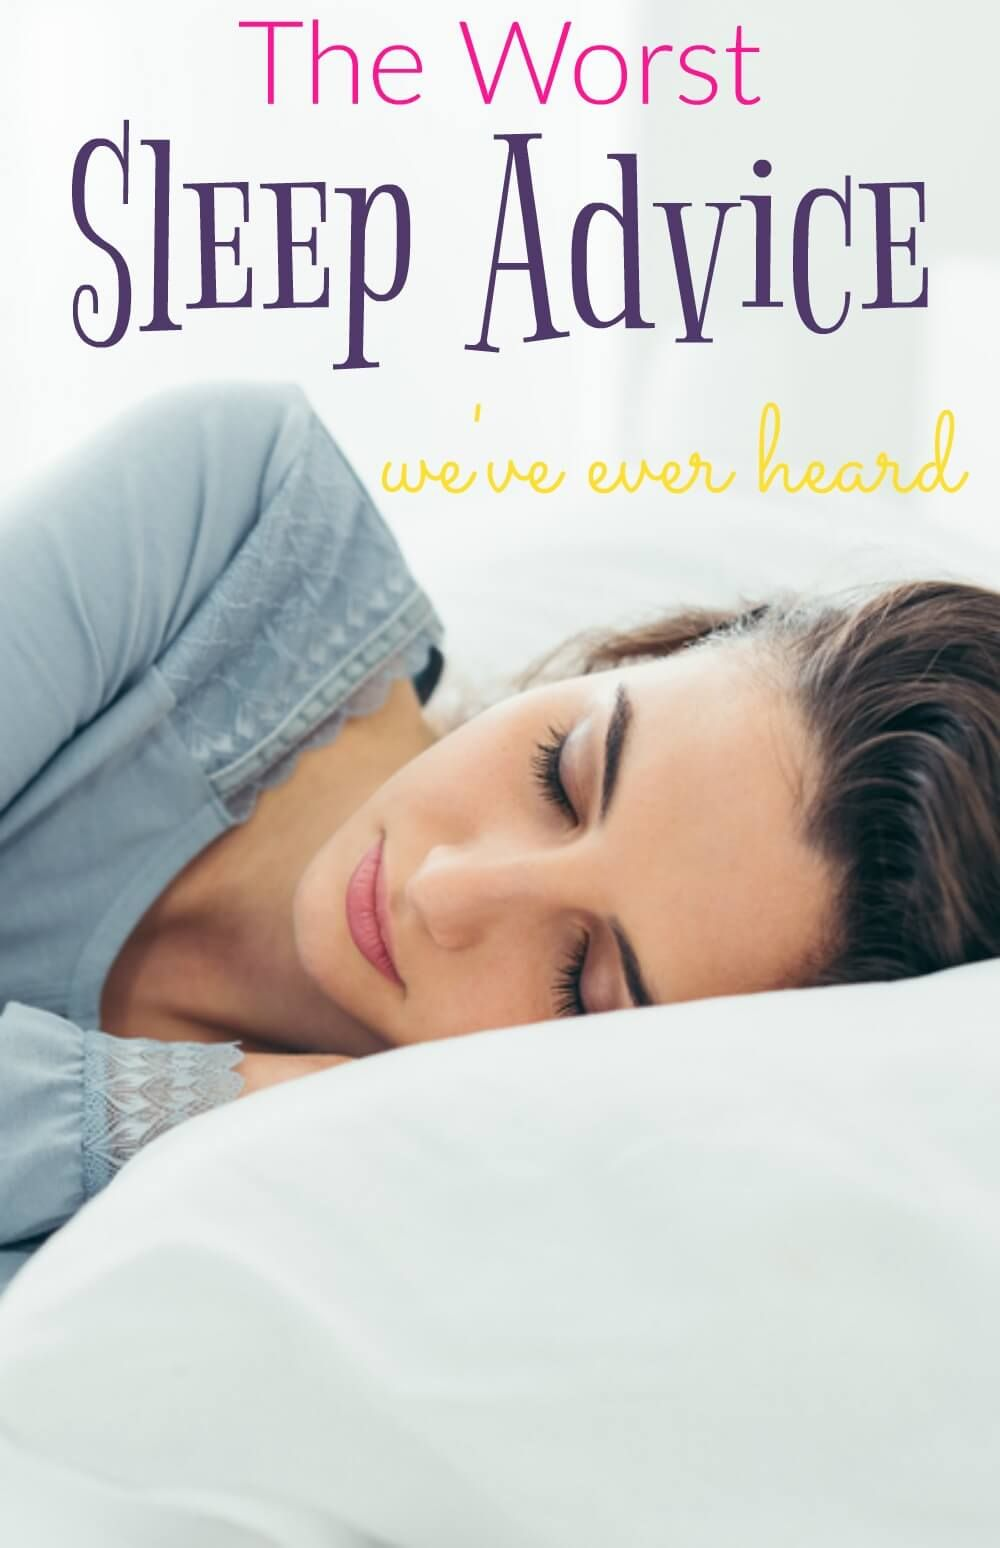 How to Get the Worst Nights Sleep of Your Life recommend